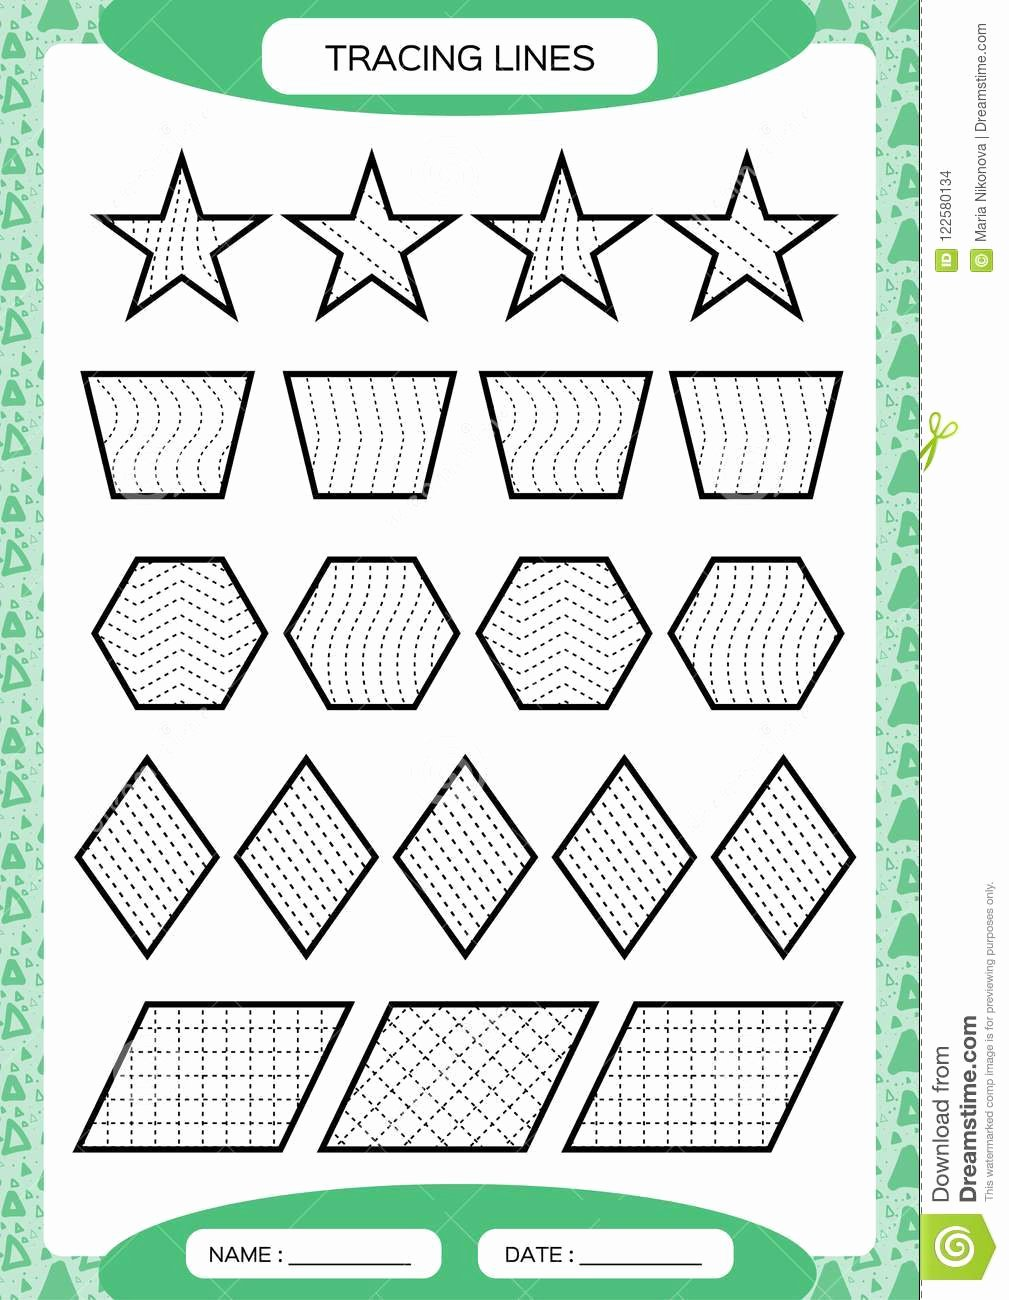 Fine Motor Skills Worksheets for Preschoolers New Tracing Lines Kids Education Preschool Worksheet Basic